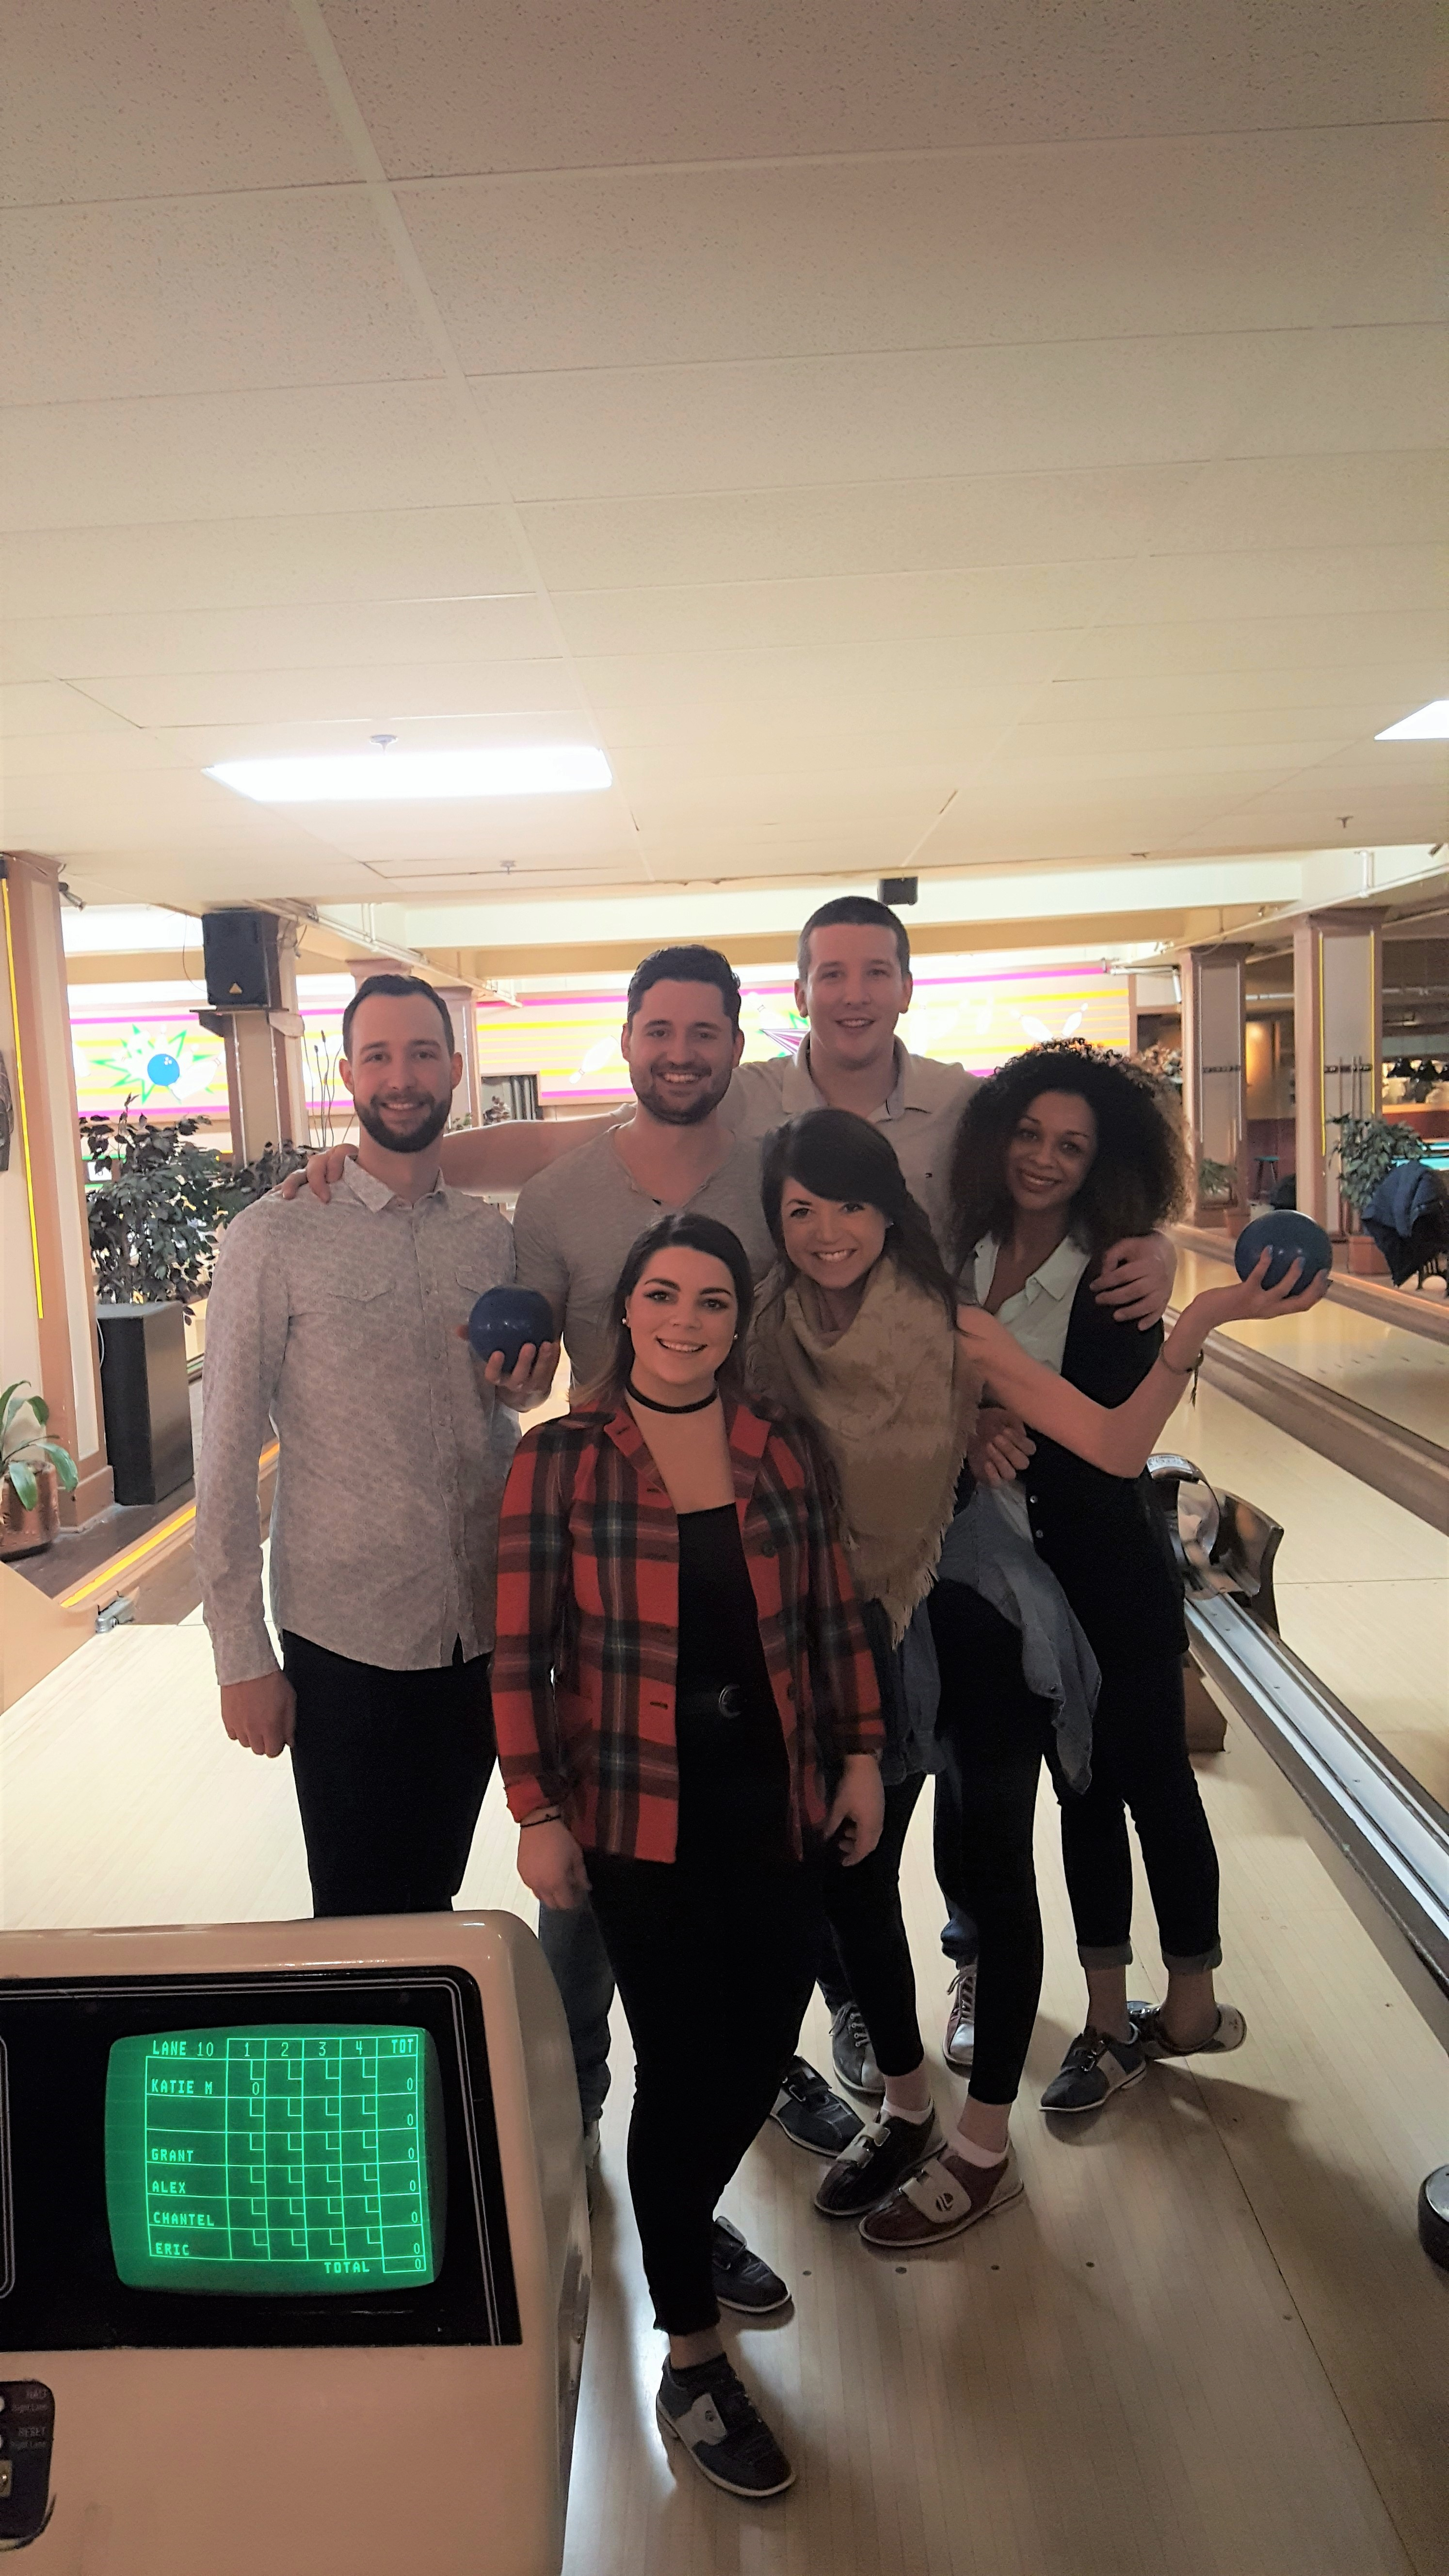 20170217 1800081 - Impact night out: pizza, bowling and beer!